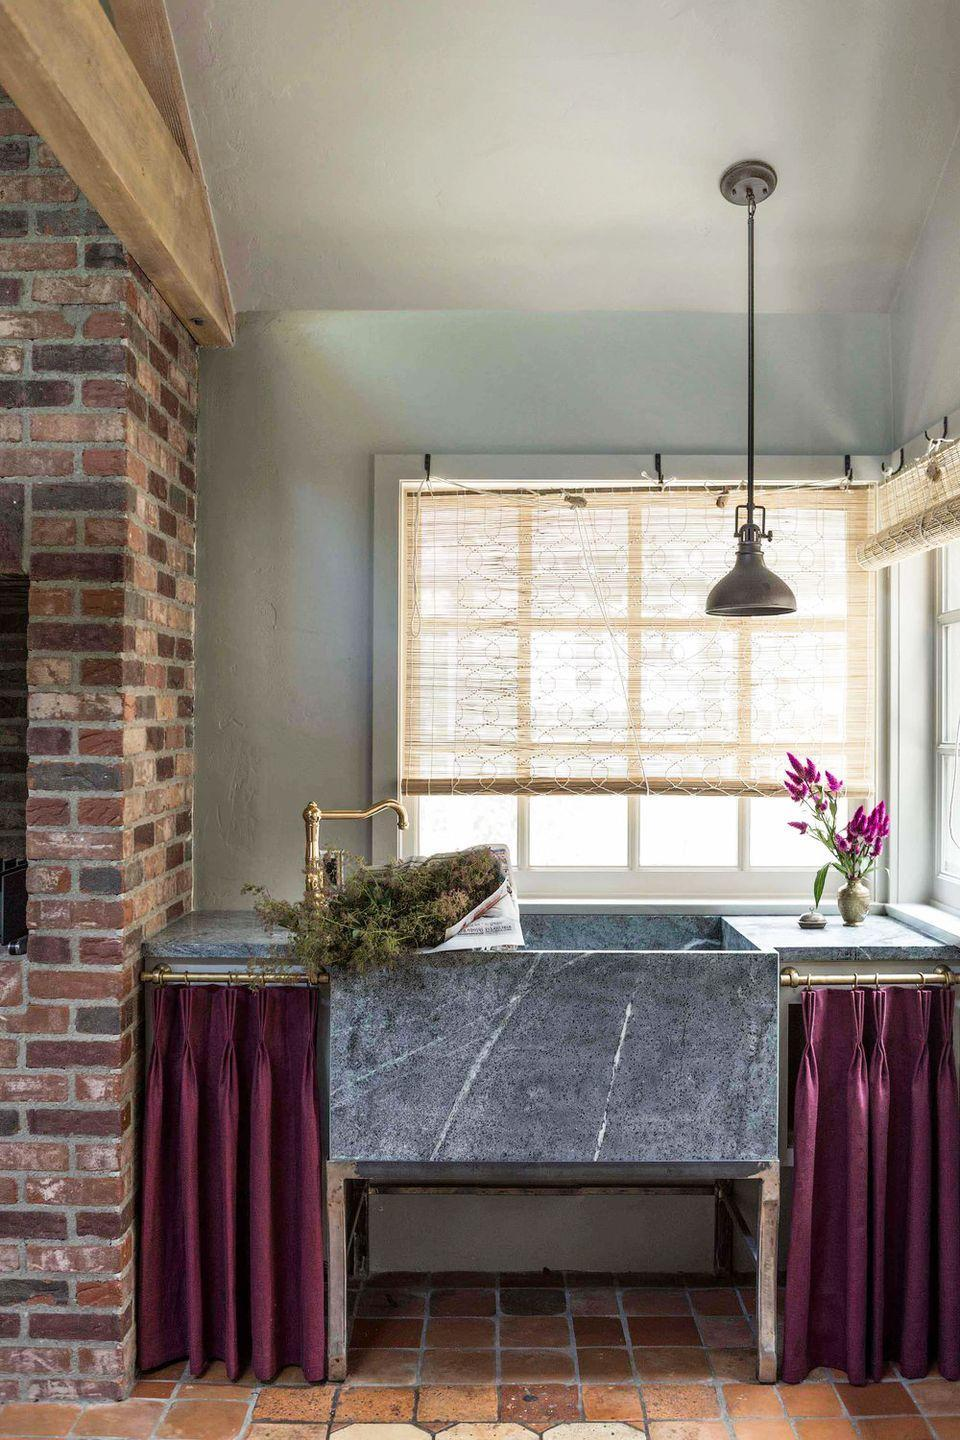 <p>In this rustic kitchen, Reath Design added short, pinch-pleat curtains around the sink to conceal cleaning supplies—and add a pop of color. </p>